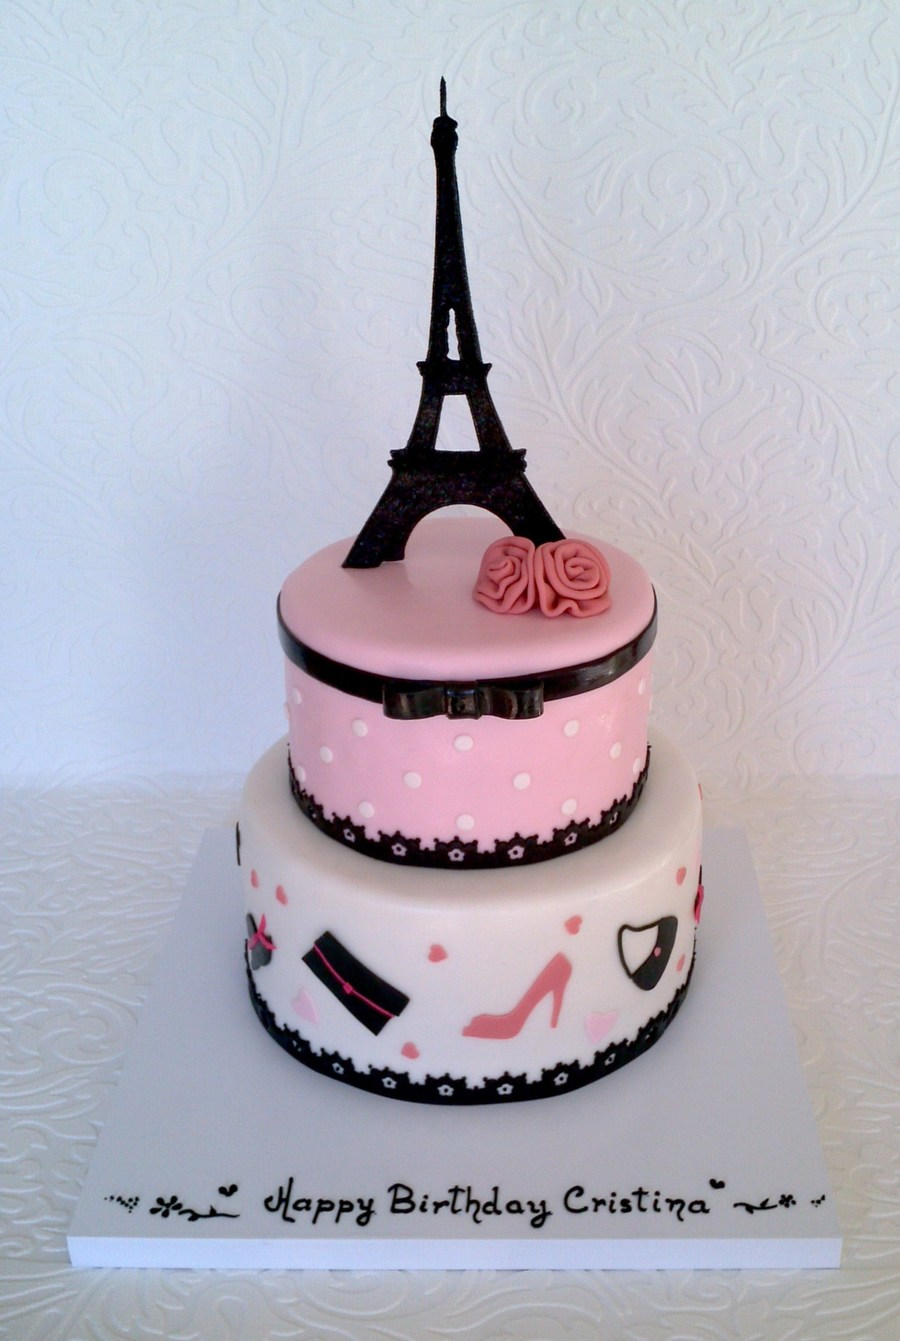 Astonishing Paris Fashion Cakecentral Com Funny Birthday Cards Online Overcheapnameinfo